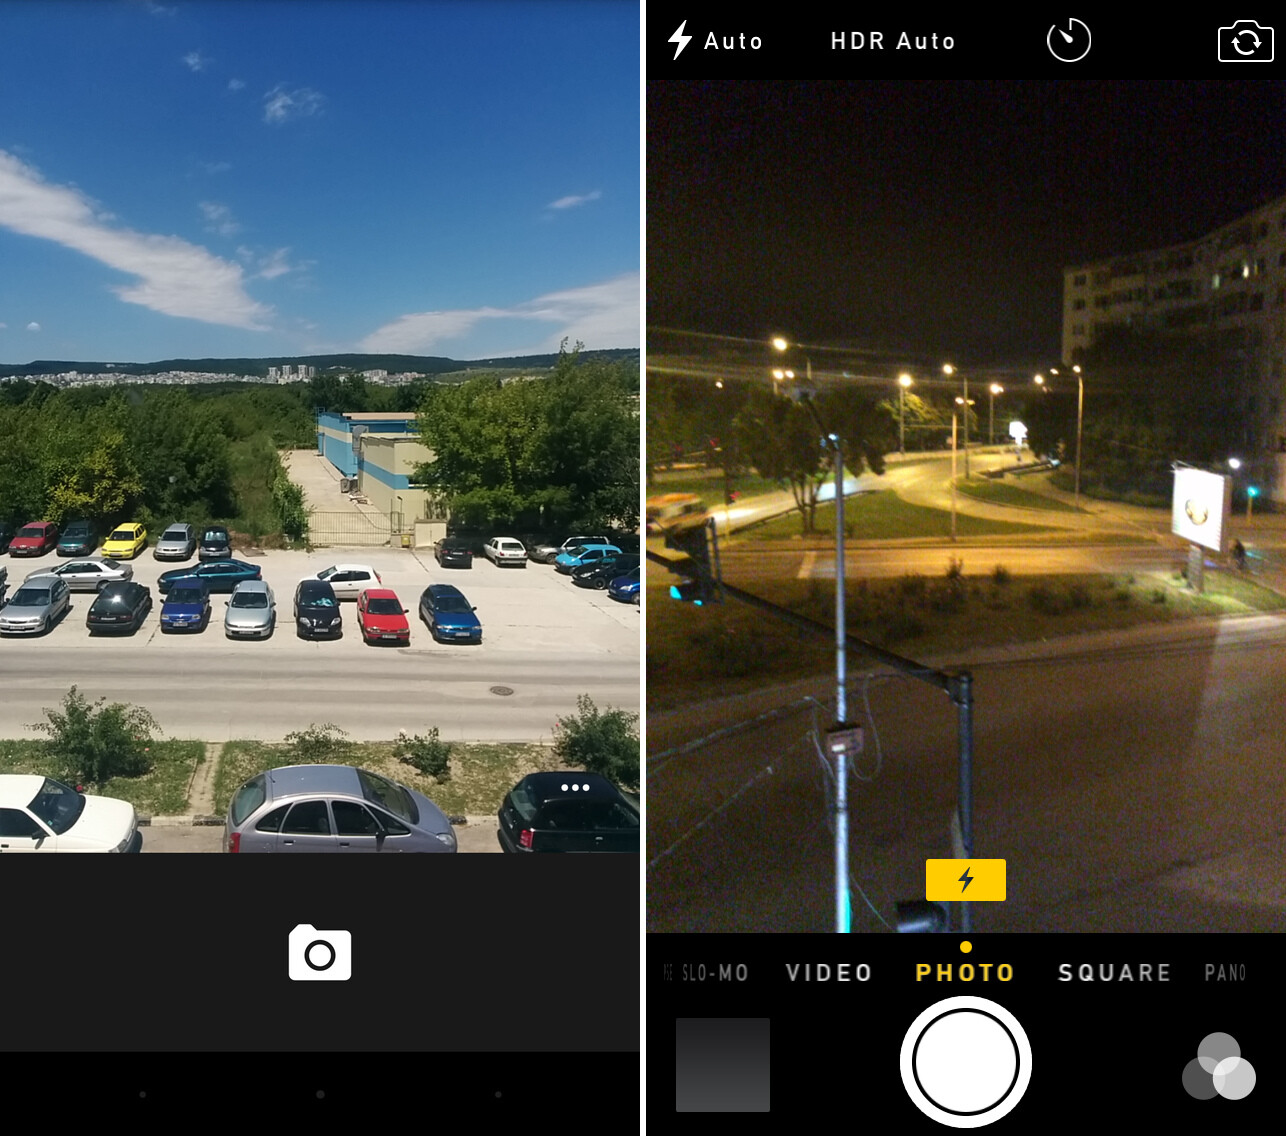 http://i-cdn.phonearena.com/images/articles/127259-image/Google-Camera-vs-iOS-8-stock-Camera-app.jpg